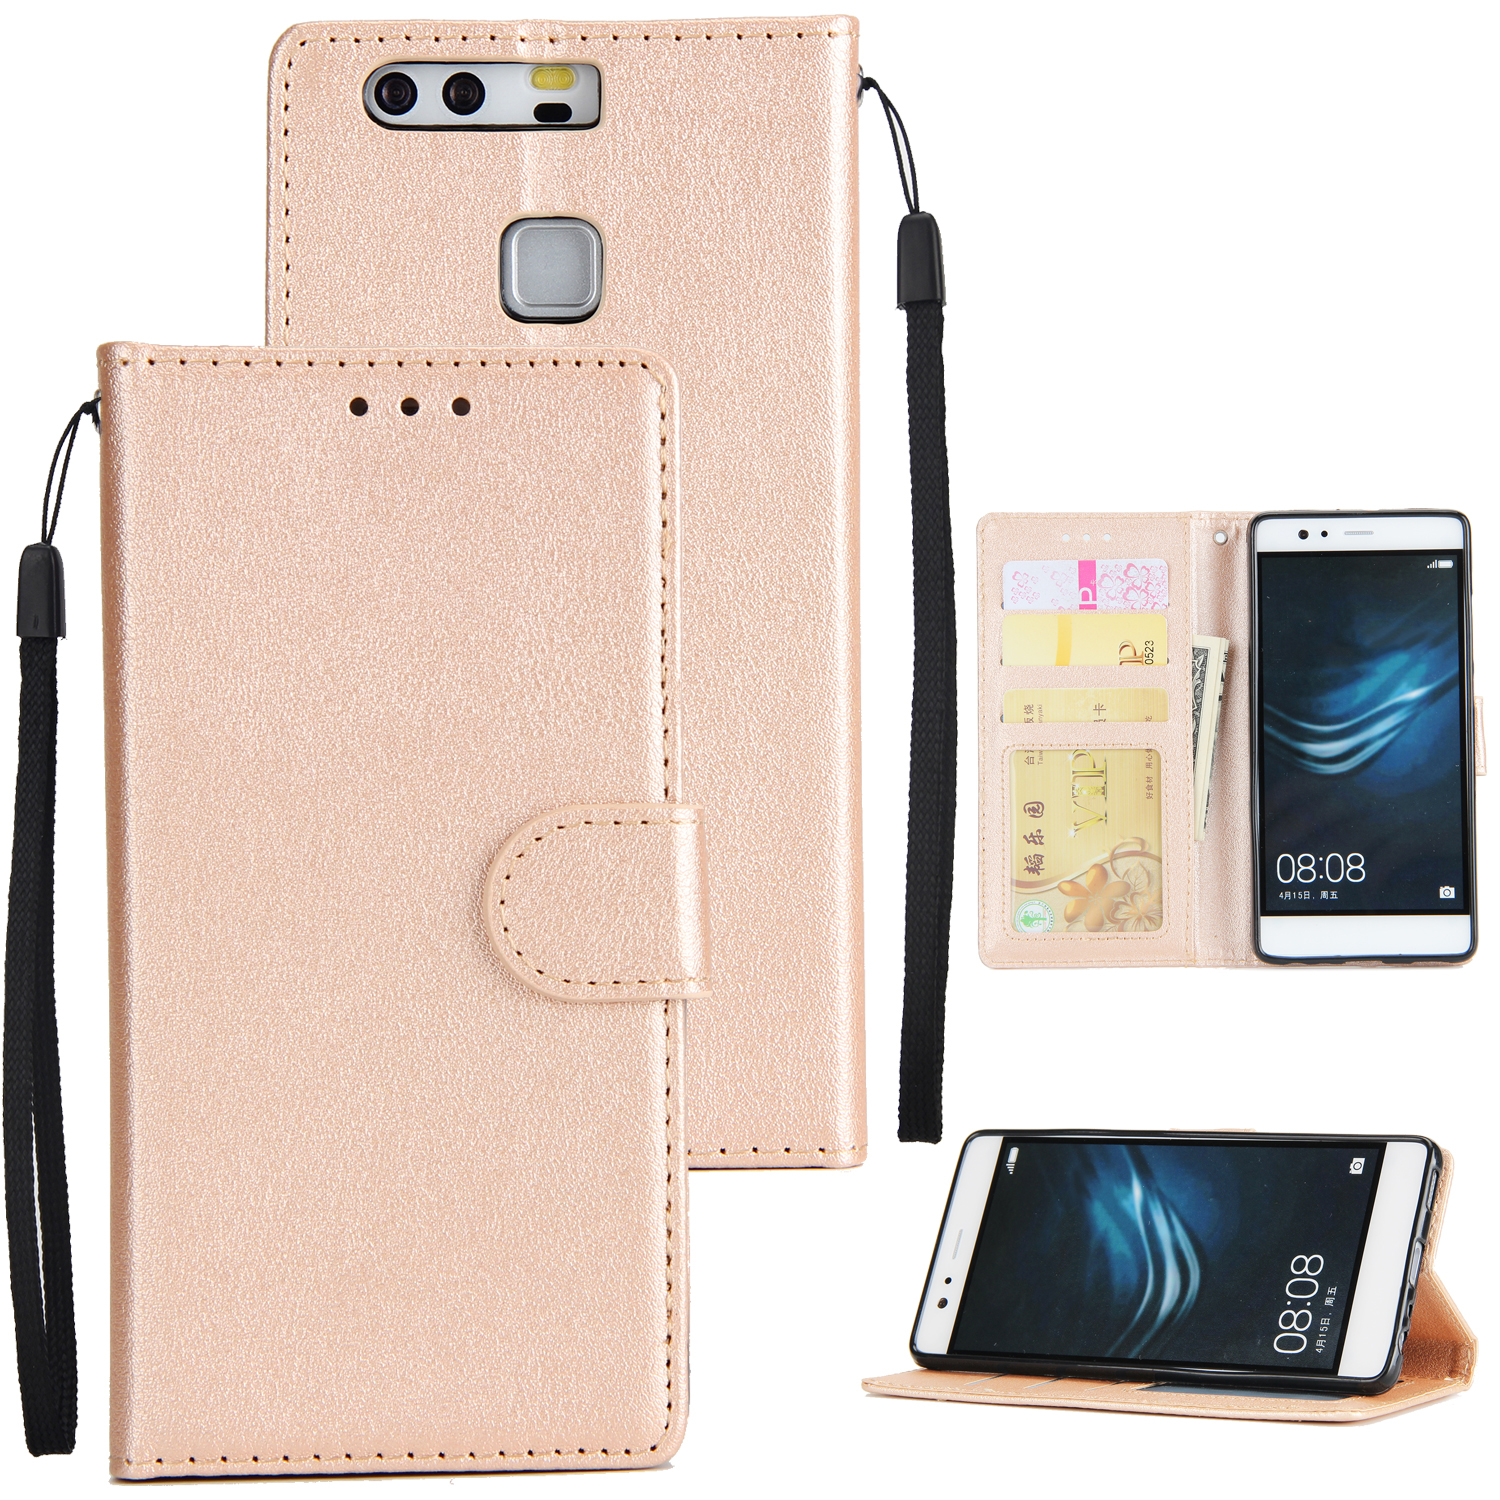 For Huawei P9 plus PU Leather Smart Phone Case Protective Cover with Buckle & 3 Card Position  Golden